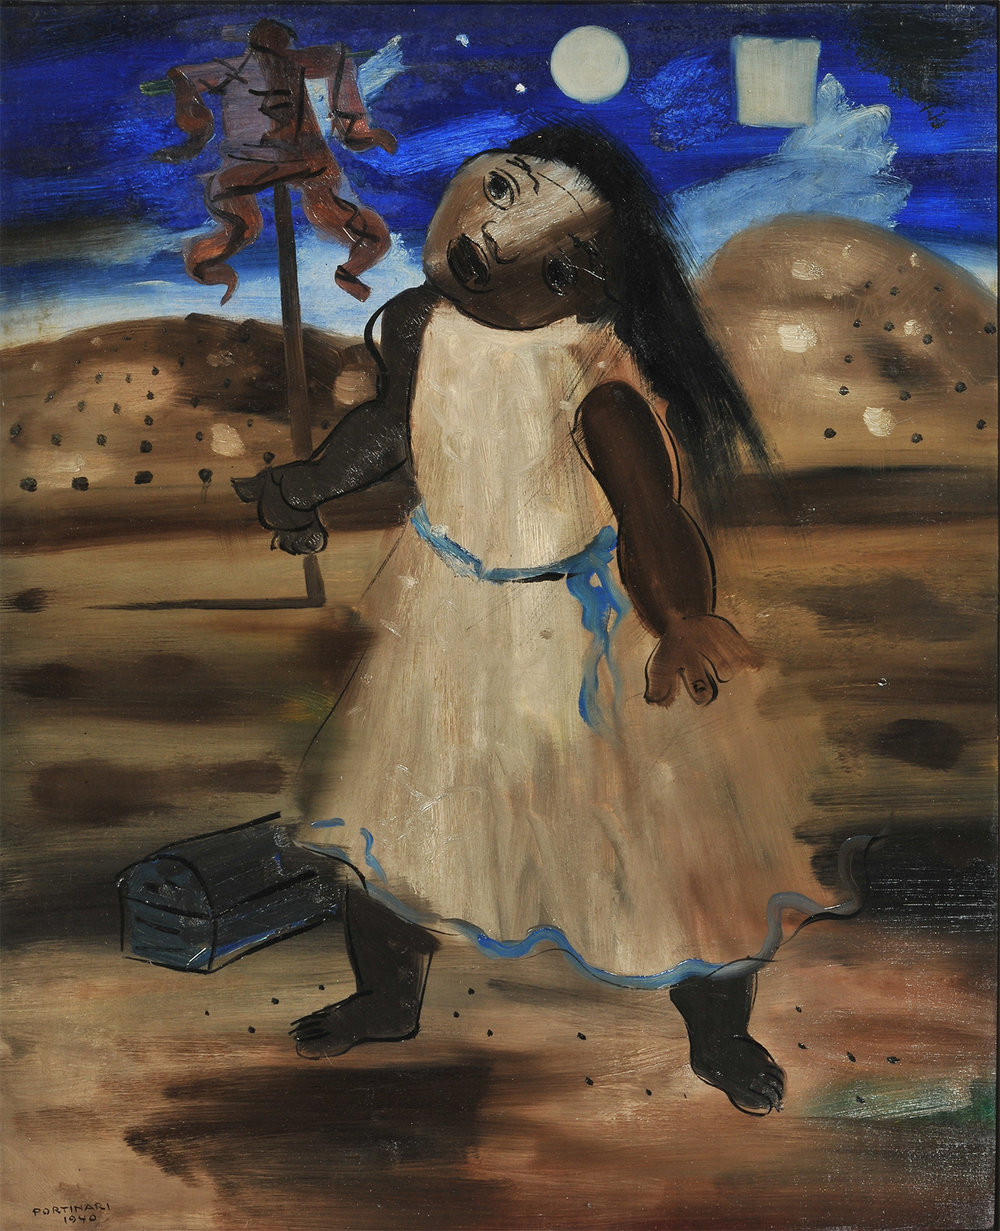 13. Candido Portinari,  Scarecrow  c. 1940, The Mercer Art Gallery.  The Art of Diplomacy - Brazilian Modernism Painted For War , 2018. Embassy of Brazil London